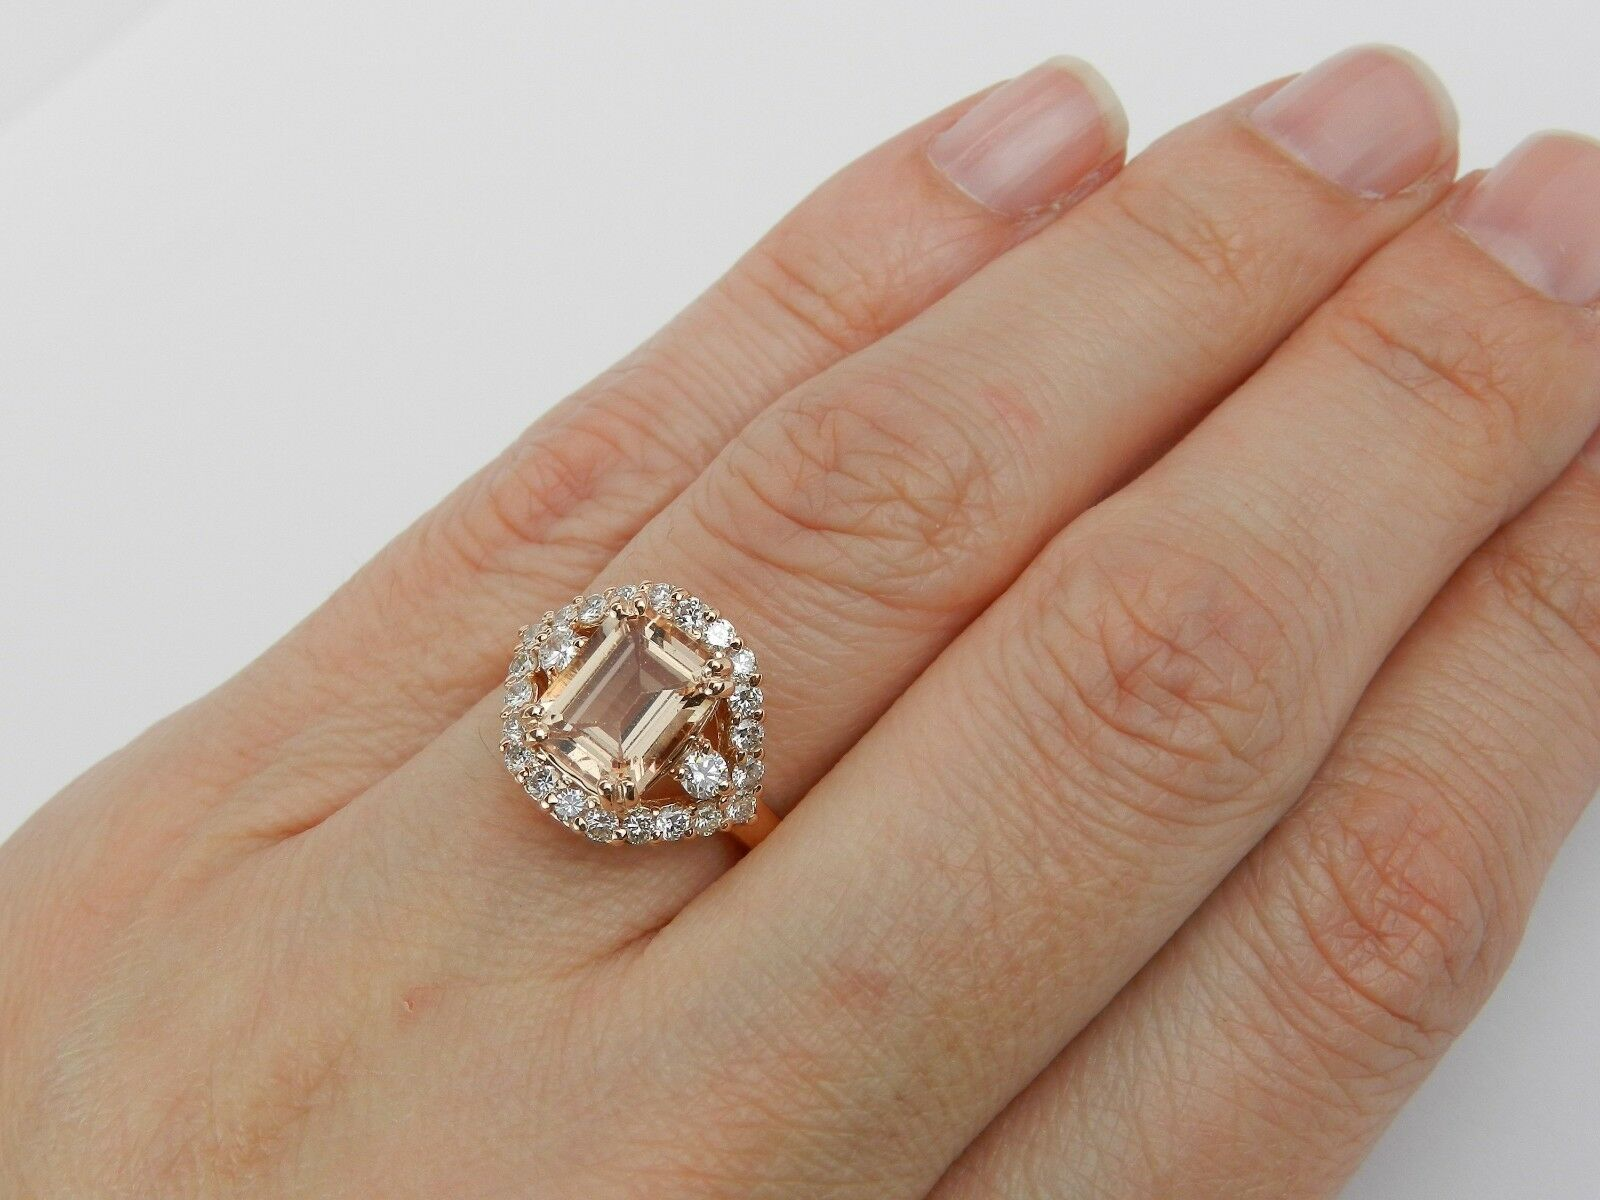 2ct Emerald Cut Peach Morganite Halo Stylish Engagement Ring 14k pink gold Over